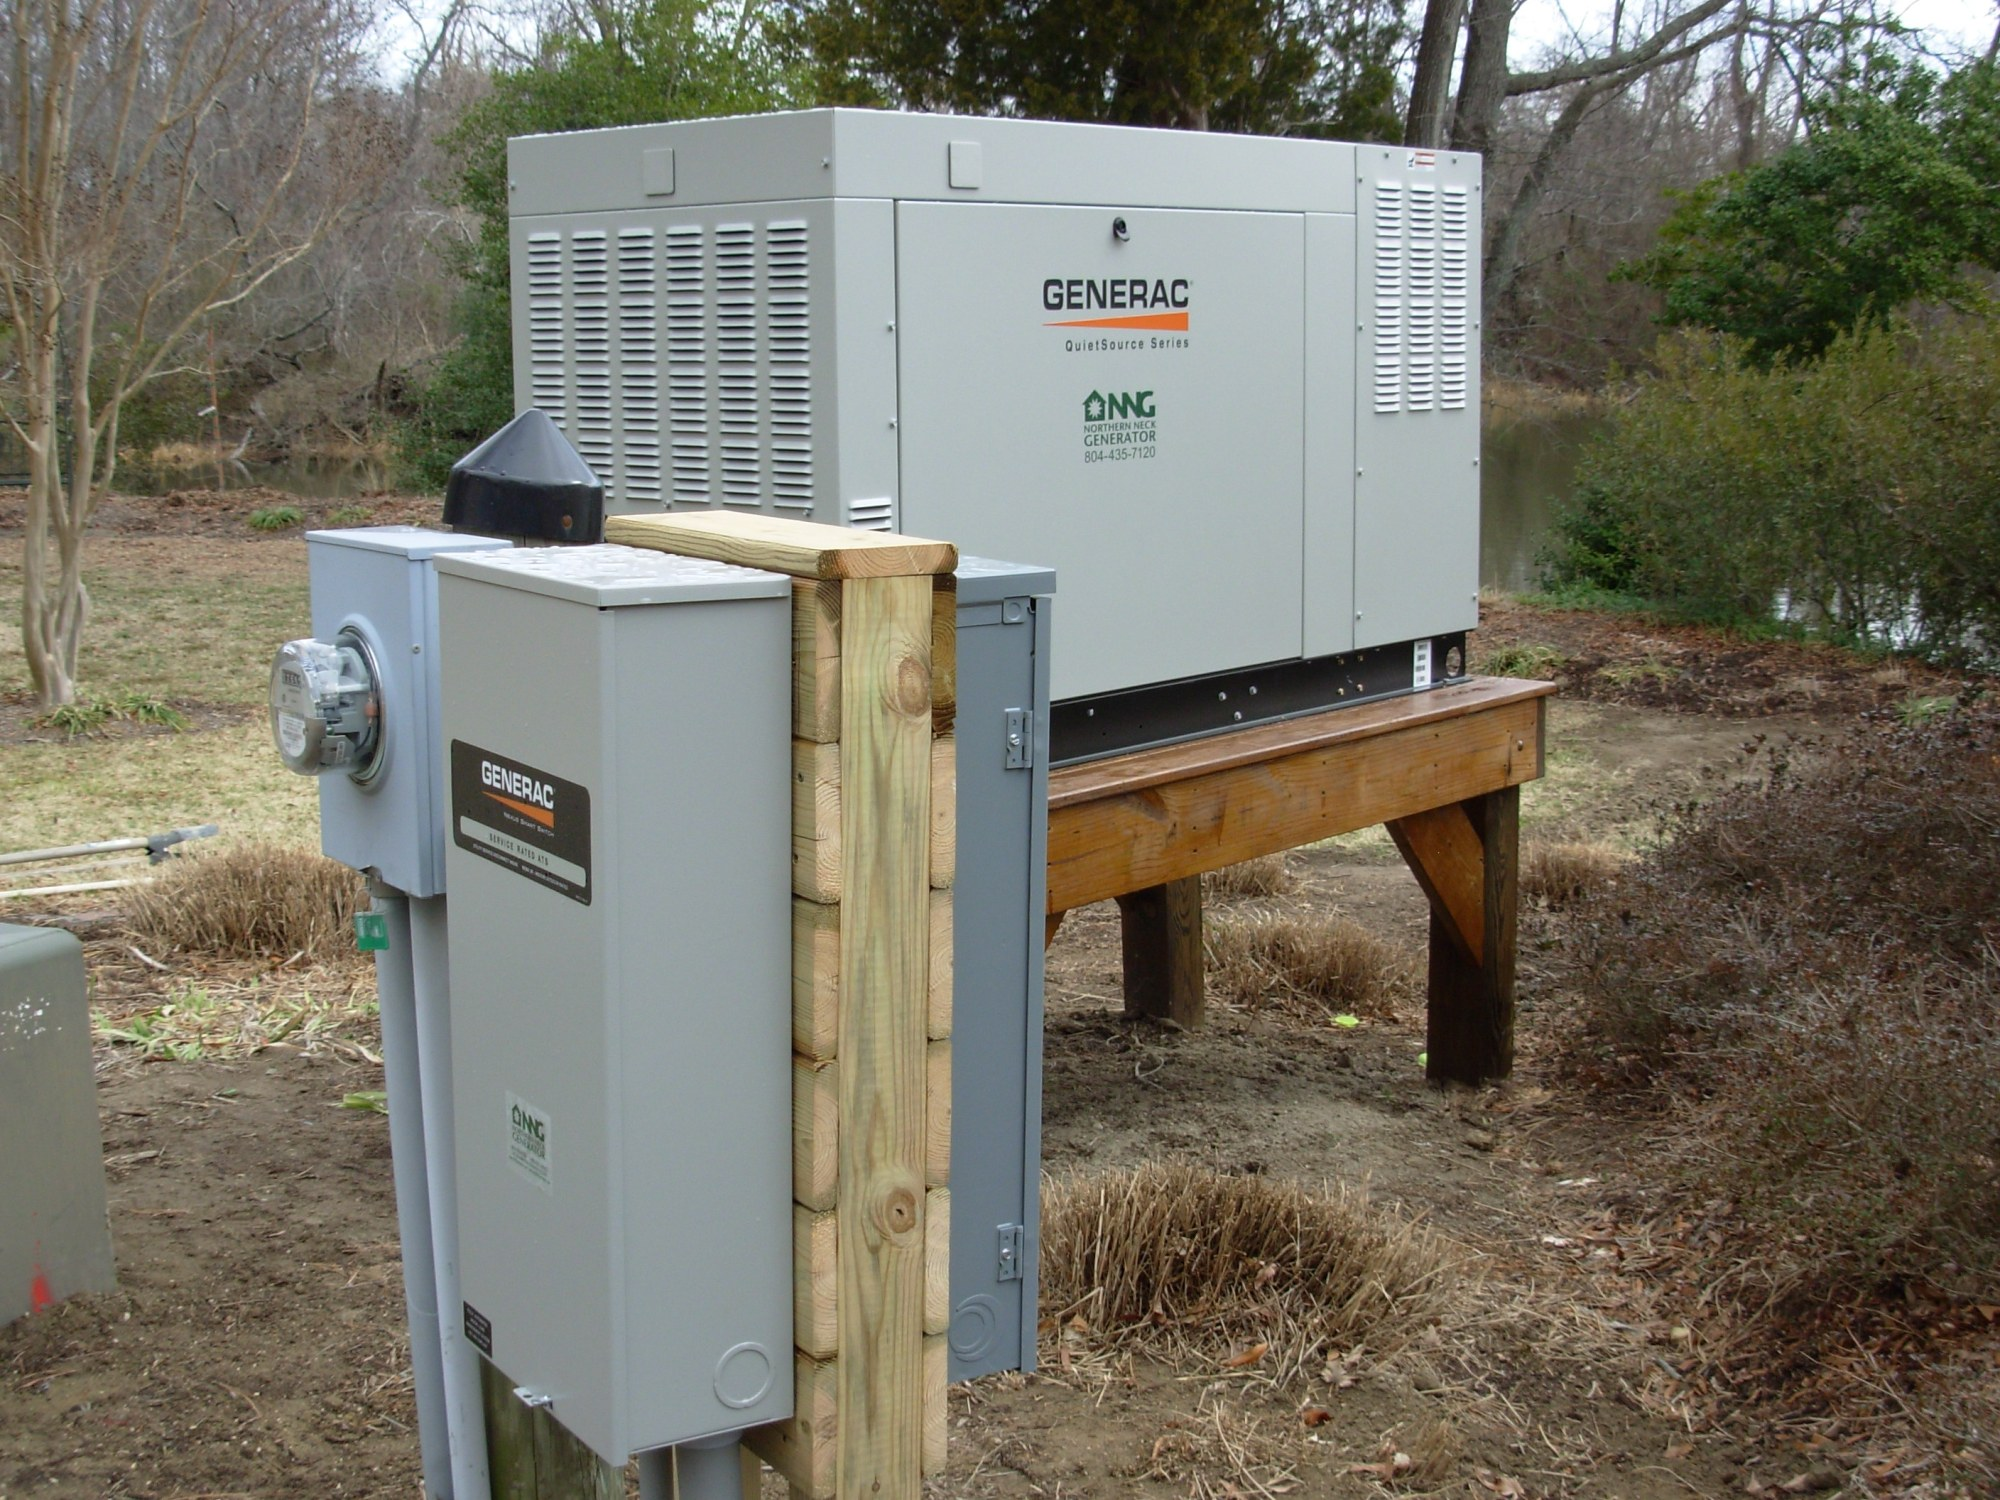 hight resolution of  wiring diagram generac 48kw generator on raised platform and 200 amp transfer switch installed by northern neck generator